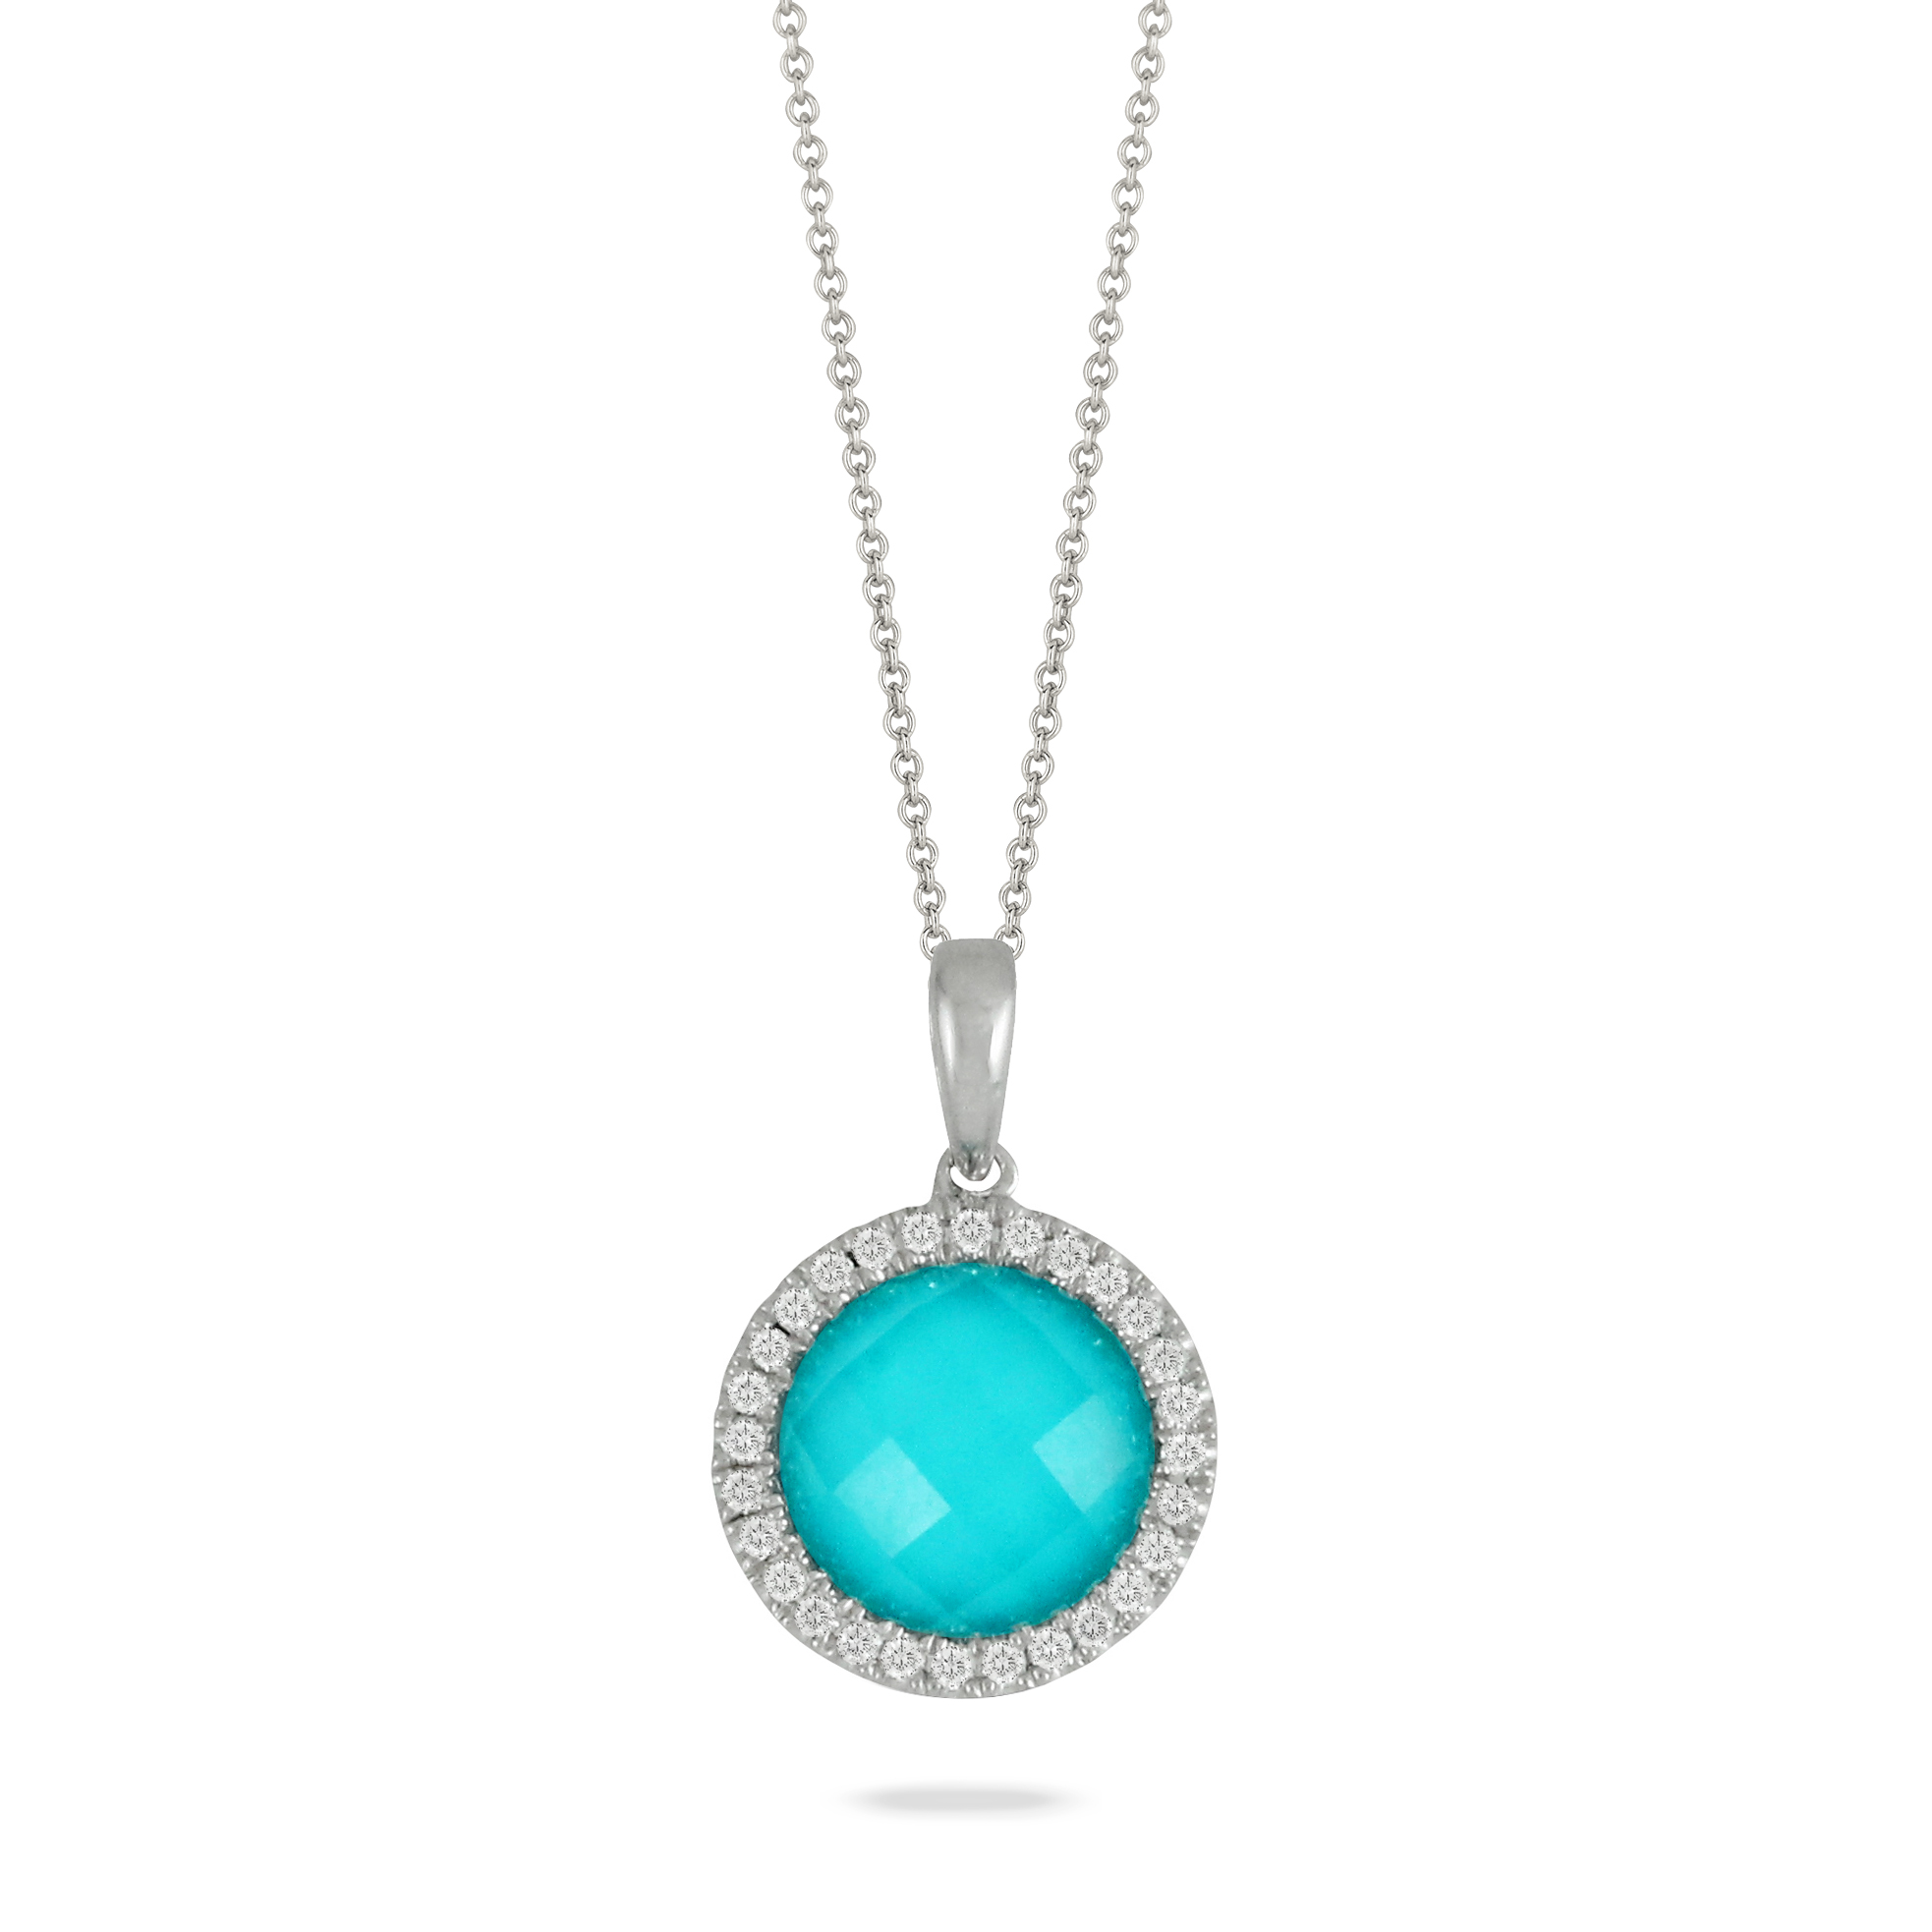 18K White Gold Turquoise Pendant by Dove